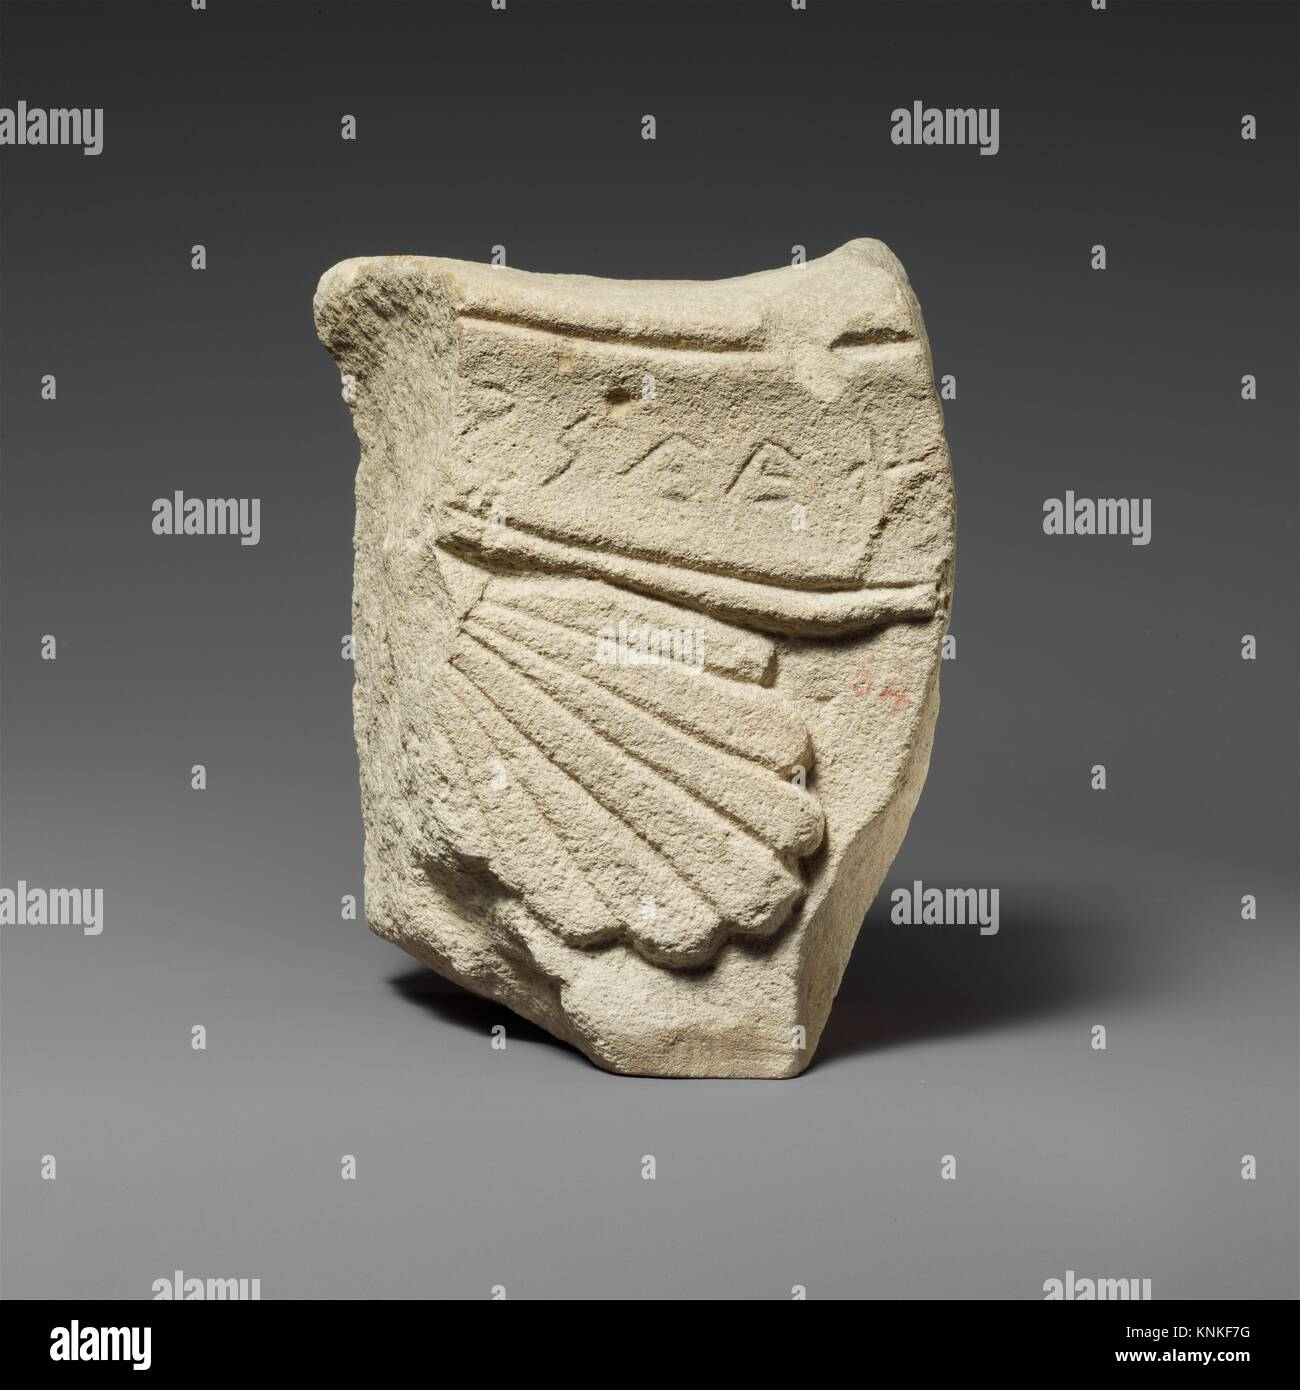 Grave relief fragment, votive. Culture: Cypriot; Medium: Limestone; Dimensions: Overall: 4 1/4 x 5 5/8 x 2 1/4 in. Stock Photo